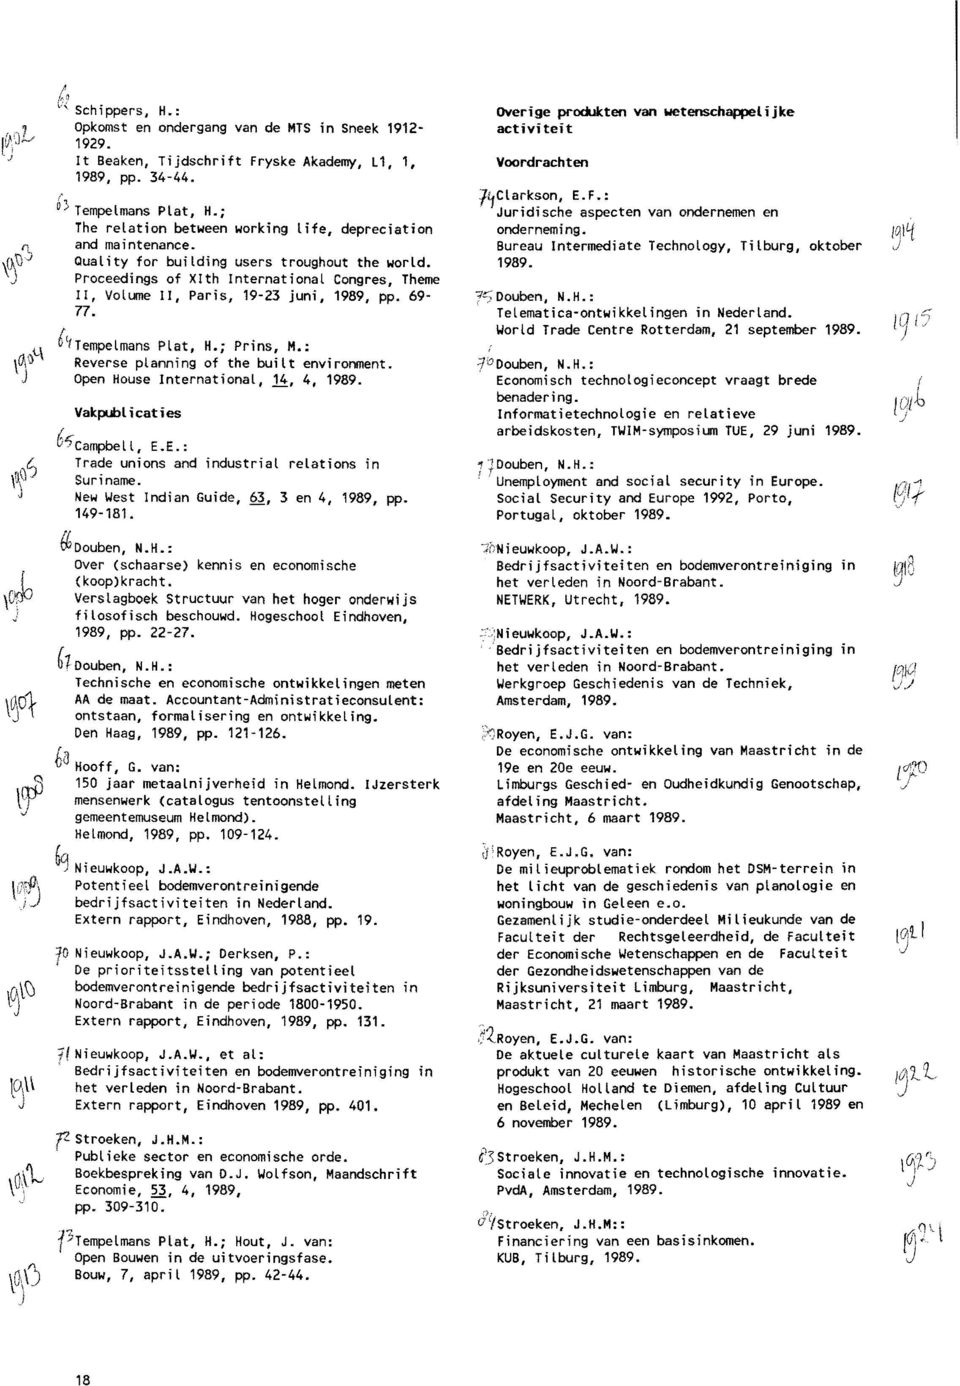 Proceedings of Xlth International Congres, Theme II, Volume II, Paris, 19-23 juni, 1989, pp. 69 77. 6(tTempelmans Plat, H.; Prins, M.: Reverse planning of the built environment.